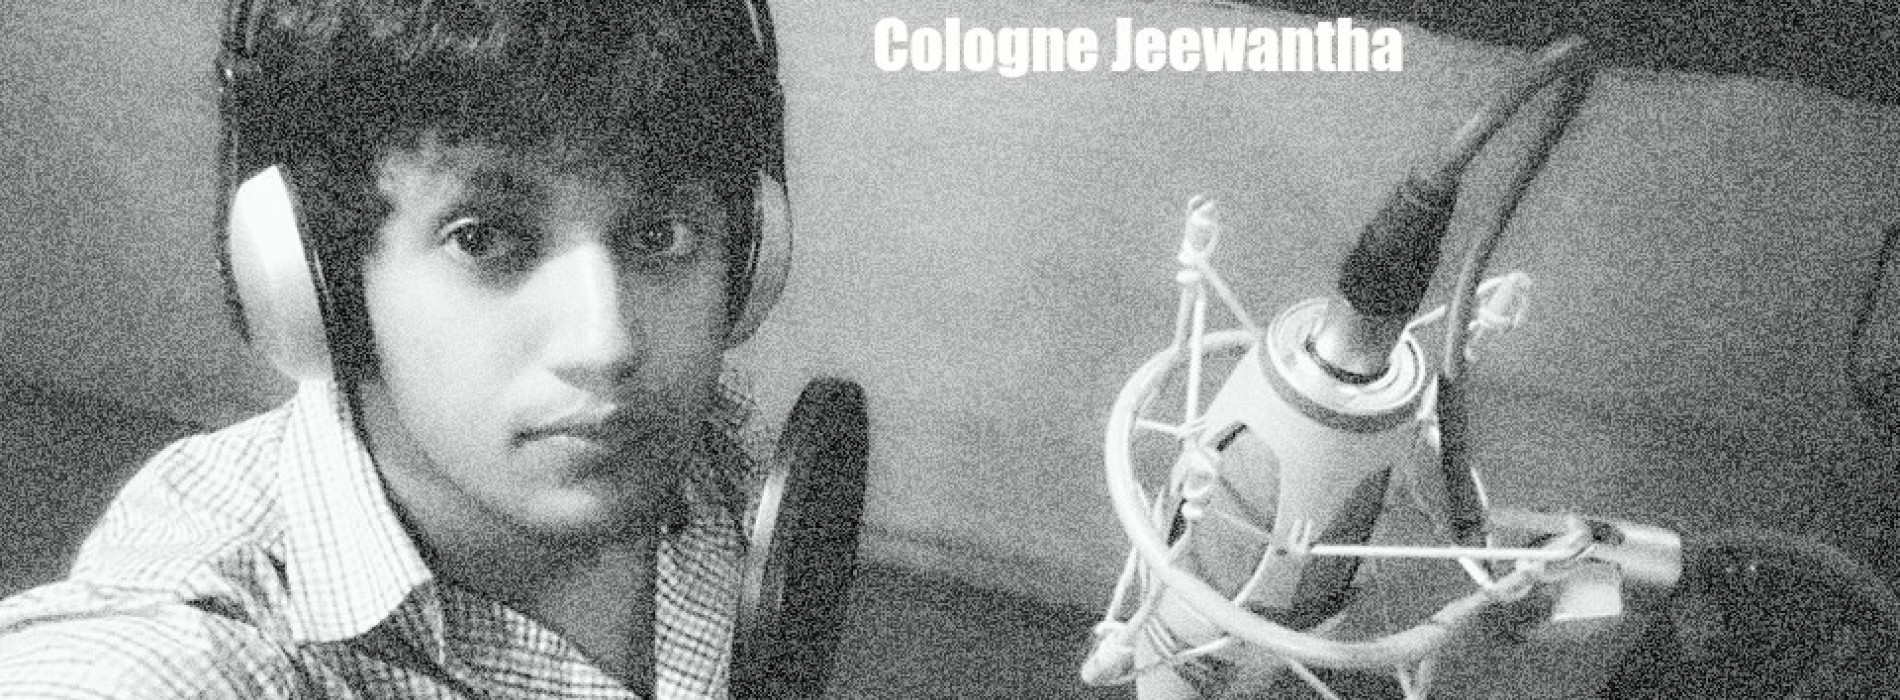 Cologne Jeewantha On New Music & The SarongPool Single